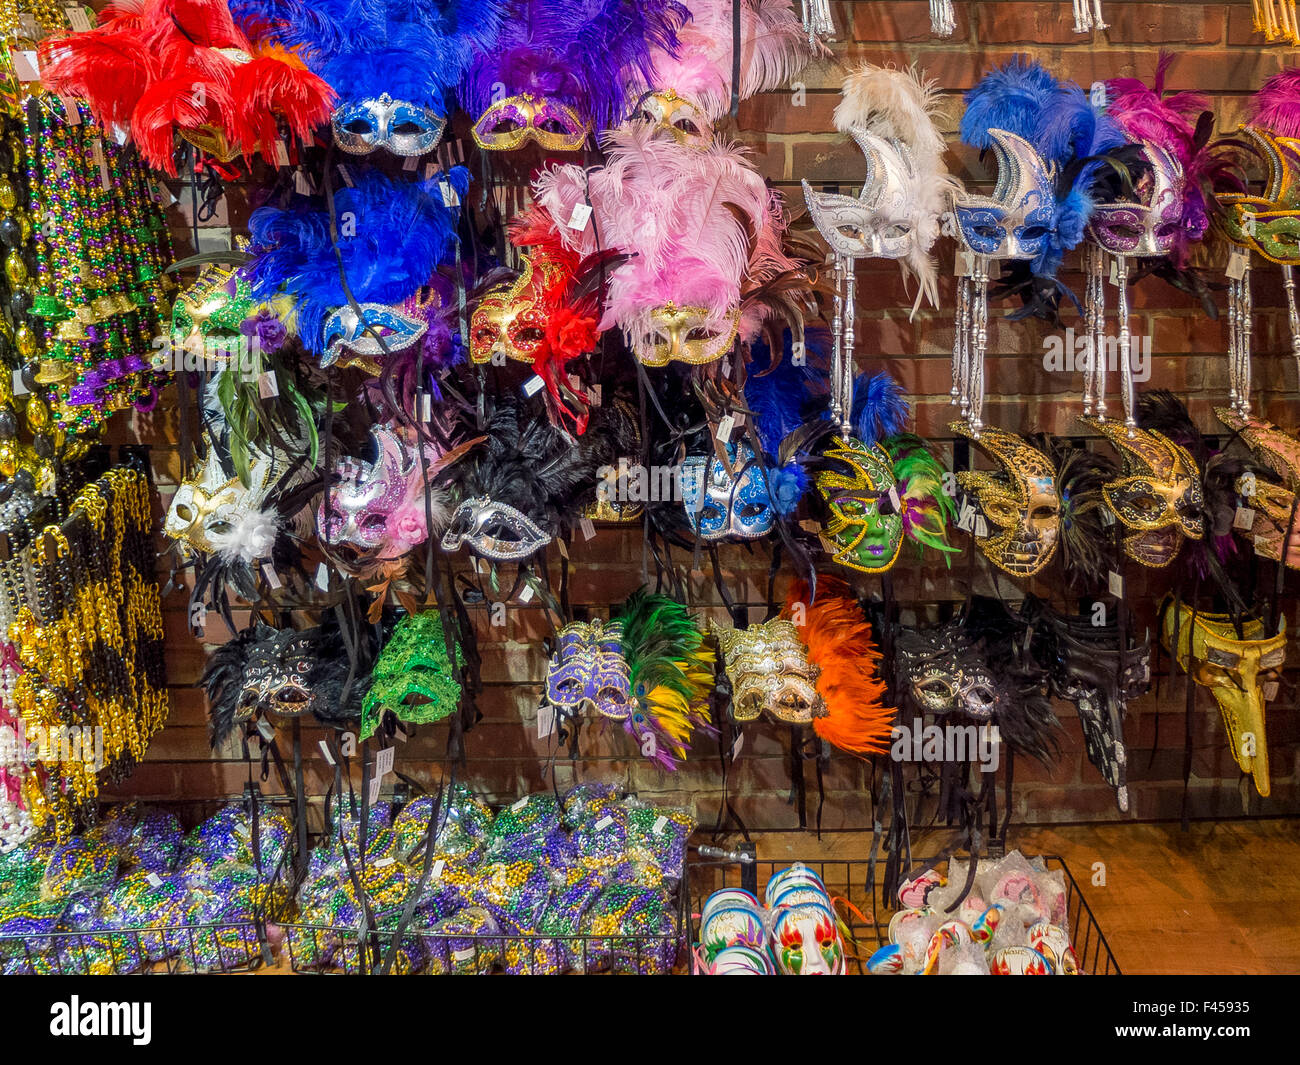 Colorful Mardi Gras masks decorated with feathers are on display in a New Orleans shop. - Stock Image